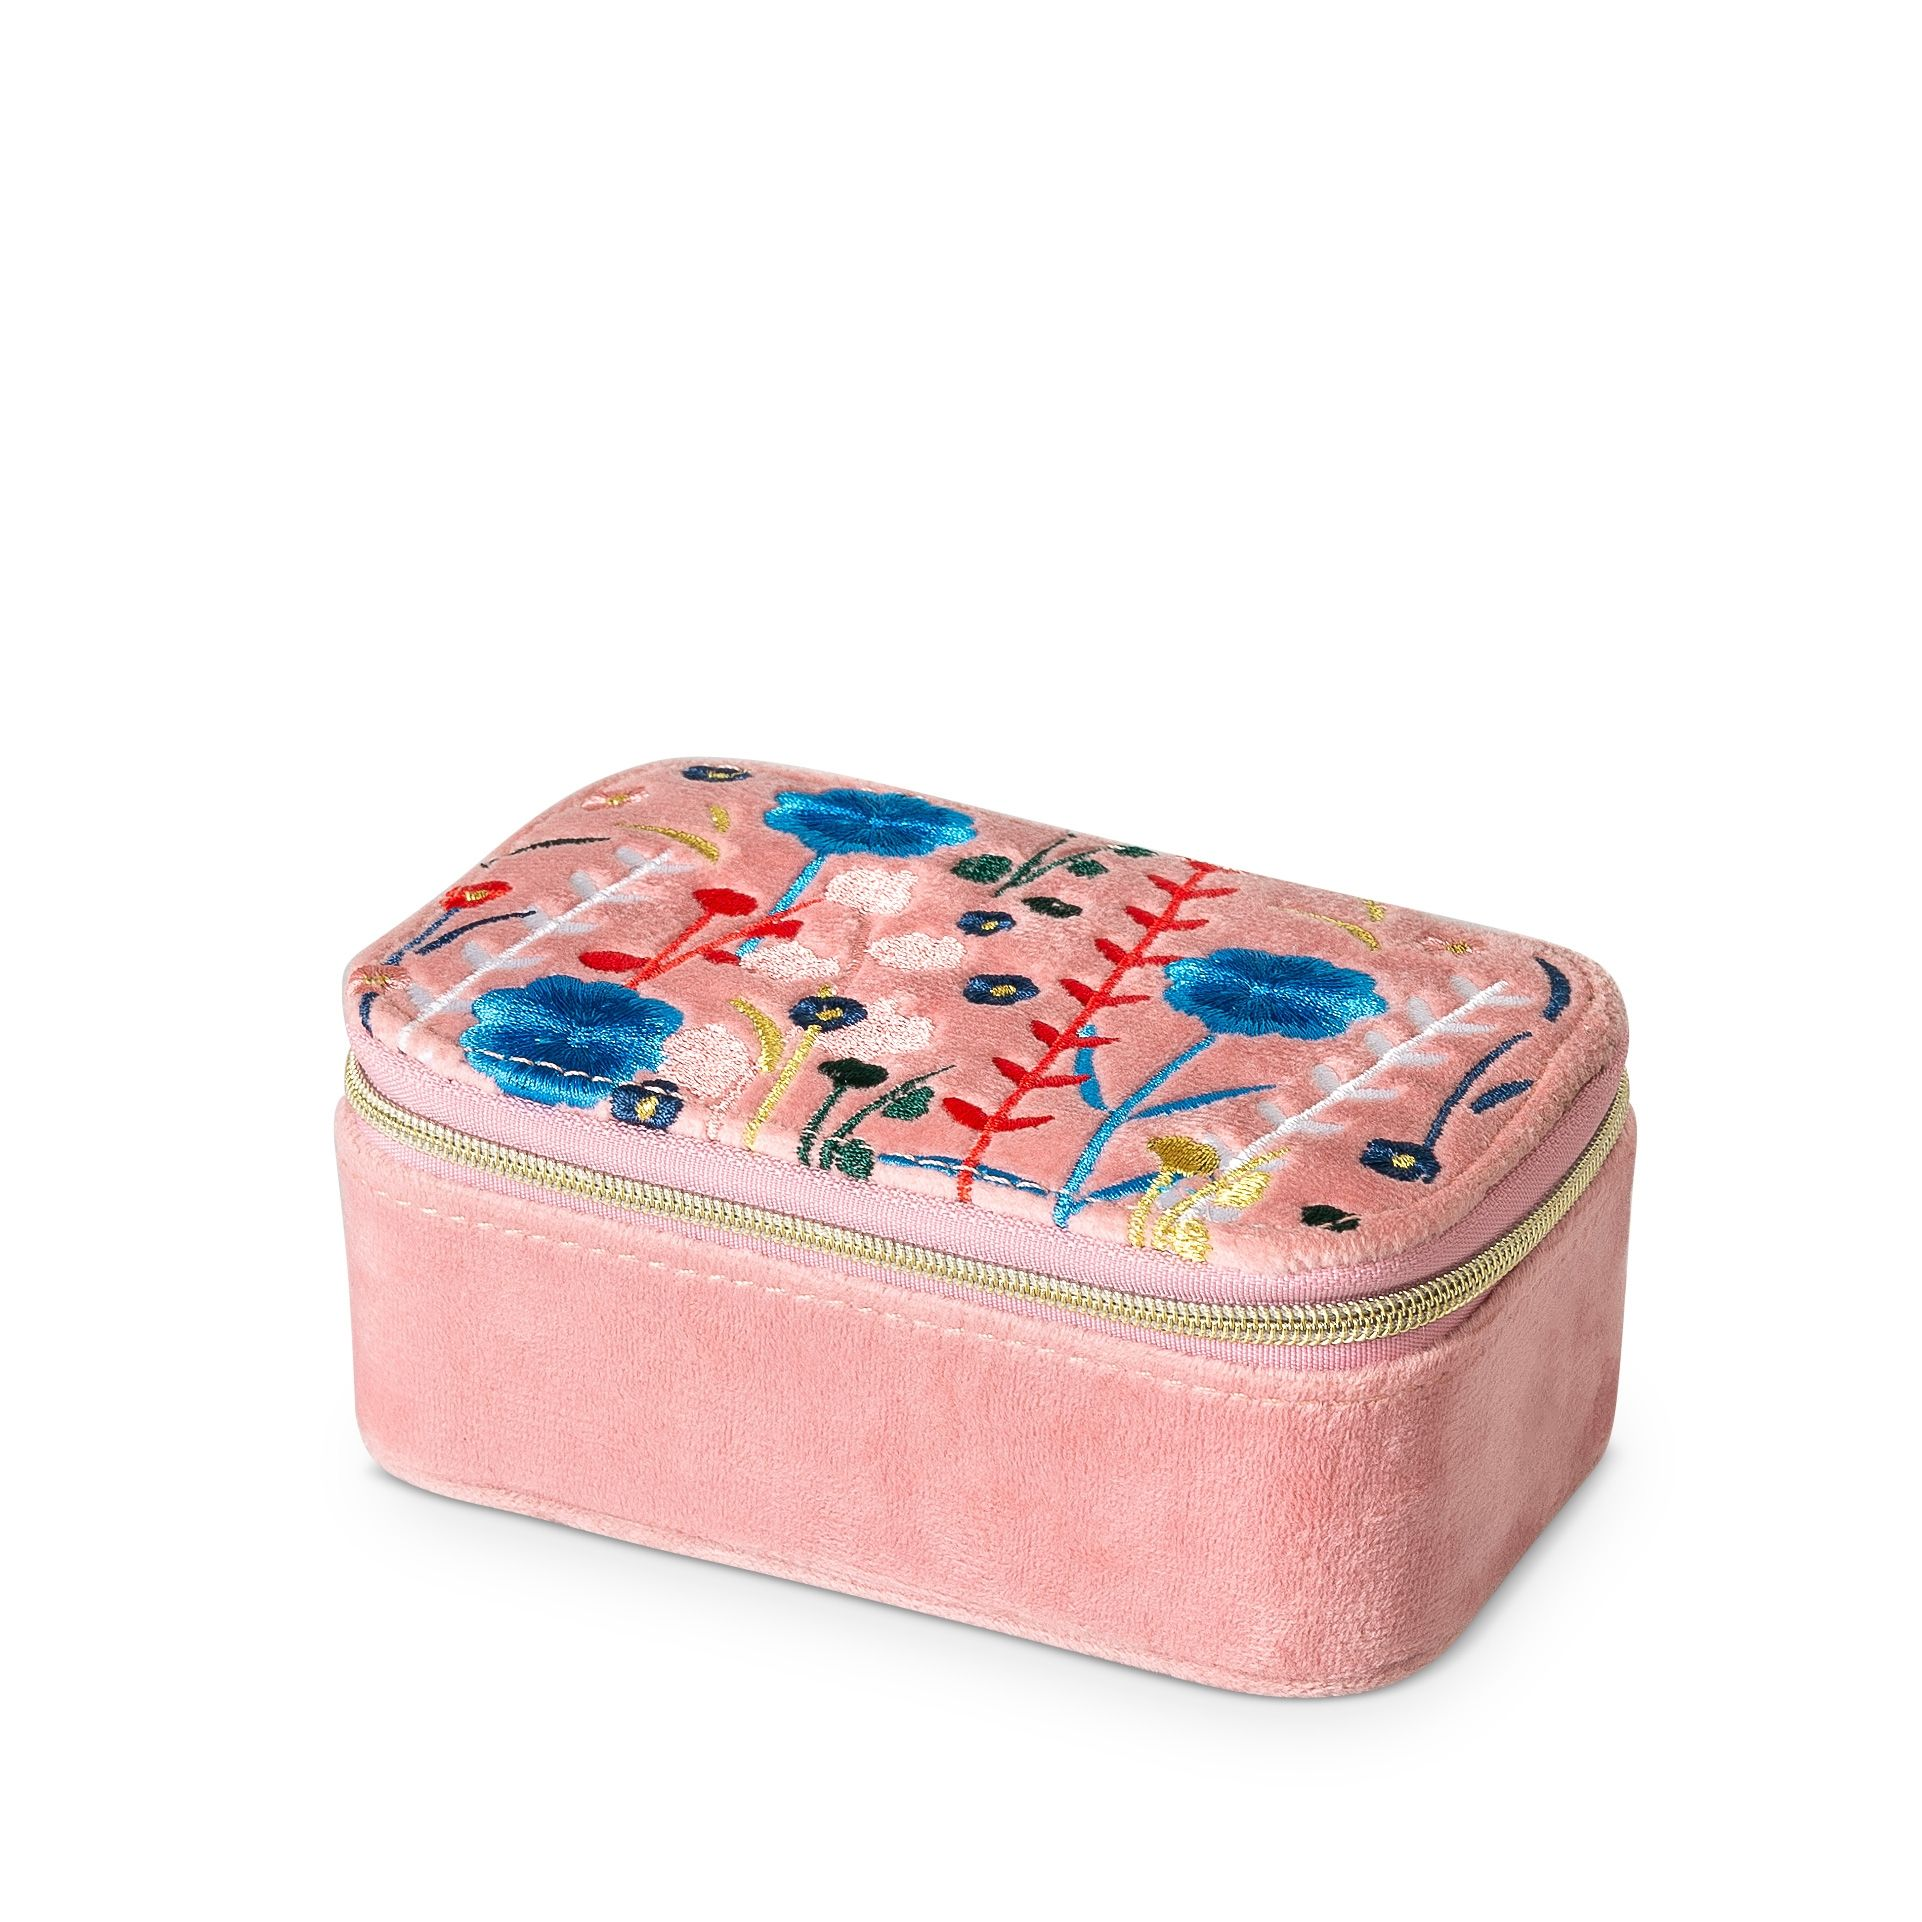 Buy The Hana Embroidered Travel Jewellery Box Small At Oliver Bonas